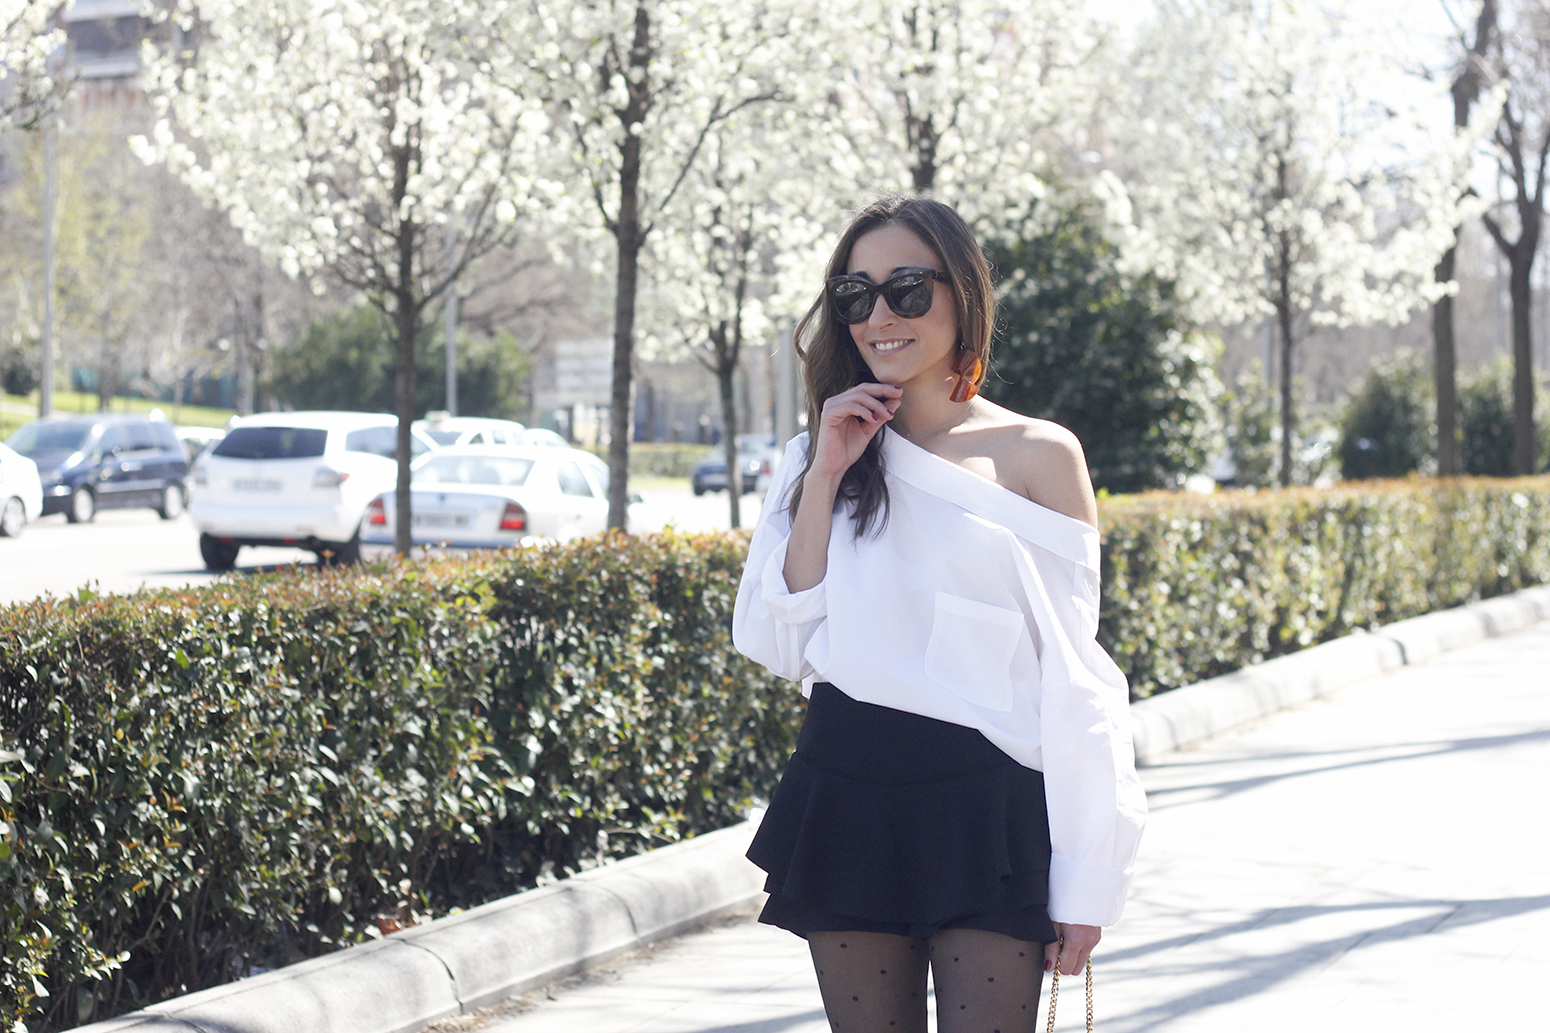 Ruffled shorts white shirt saint lauren bag céline outfit style05